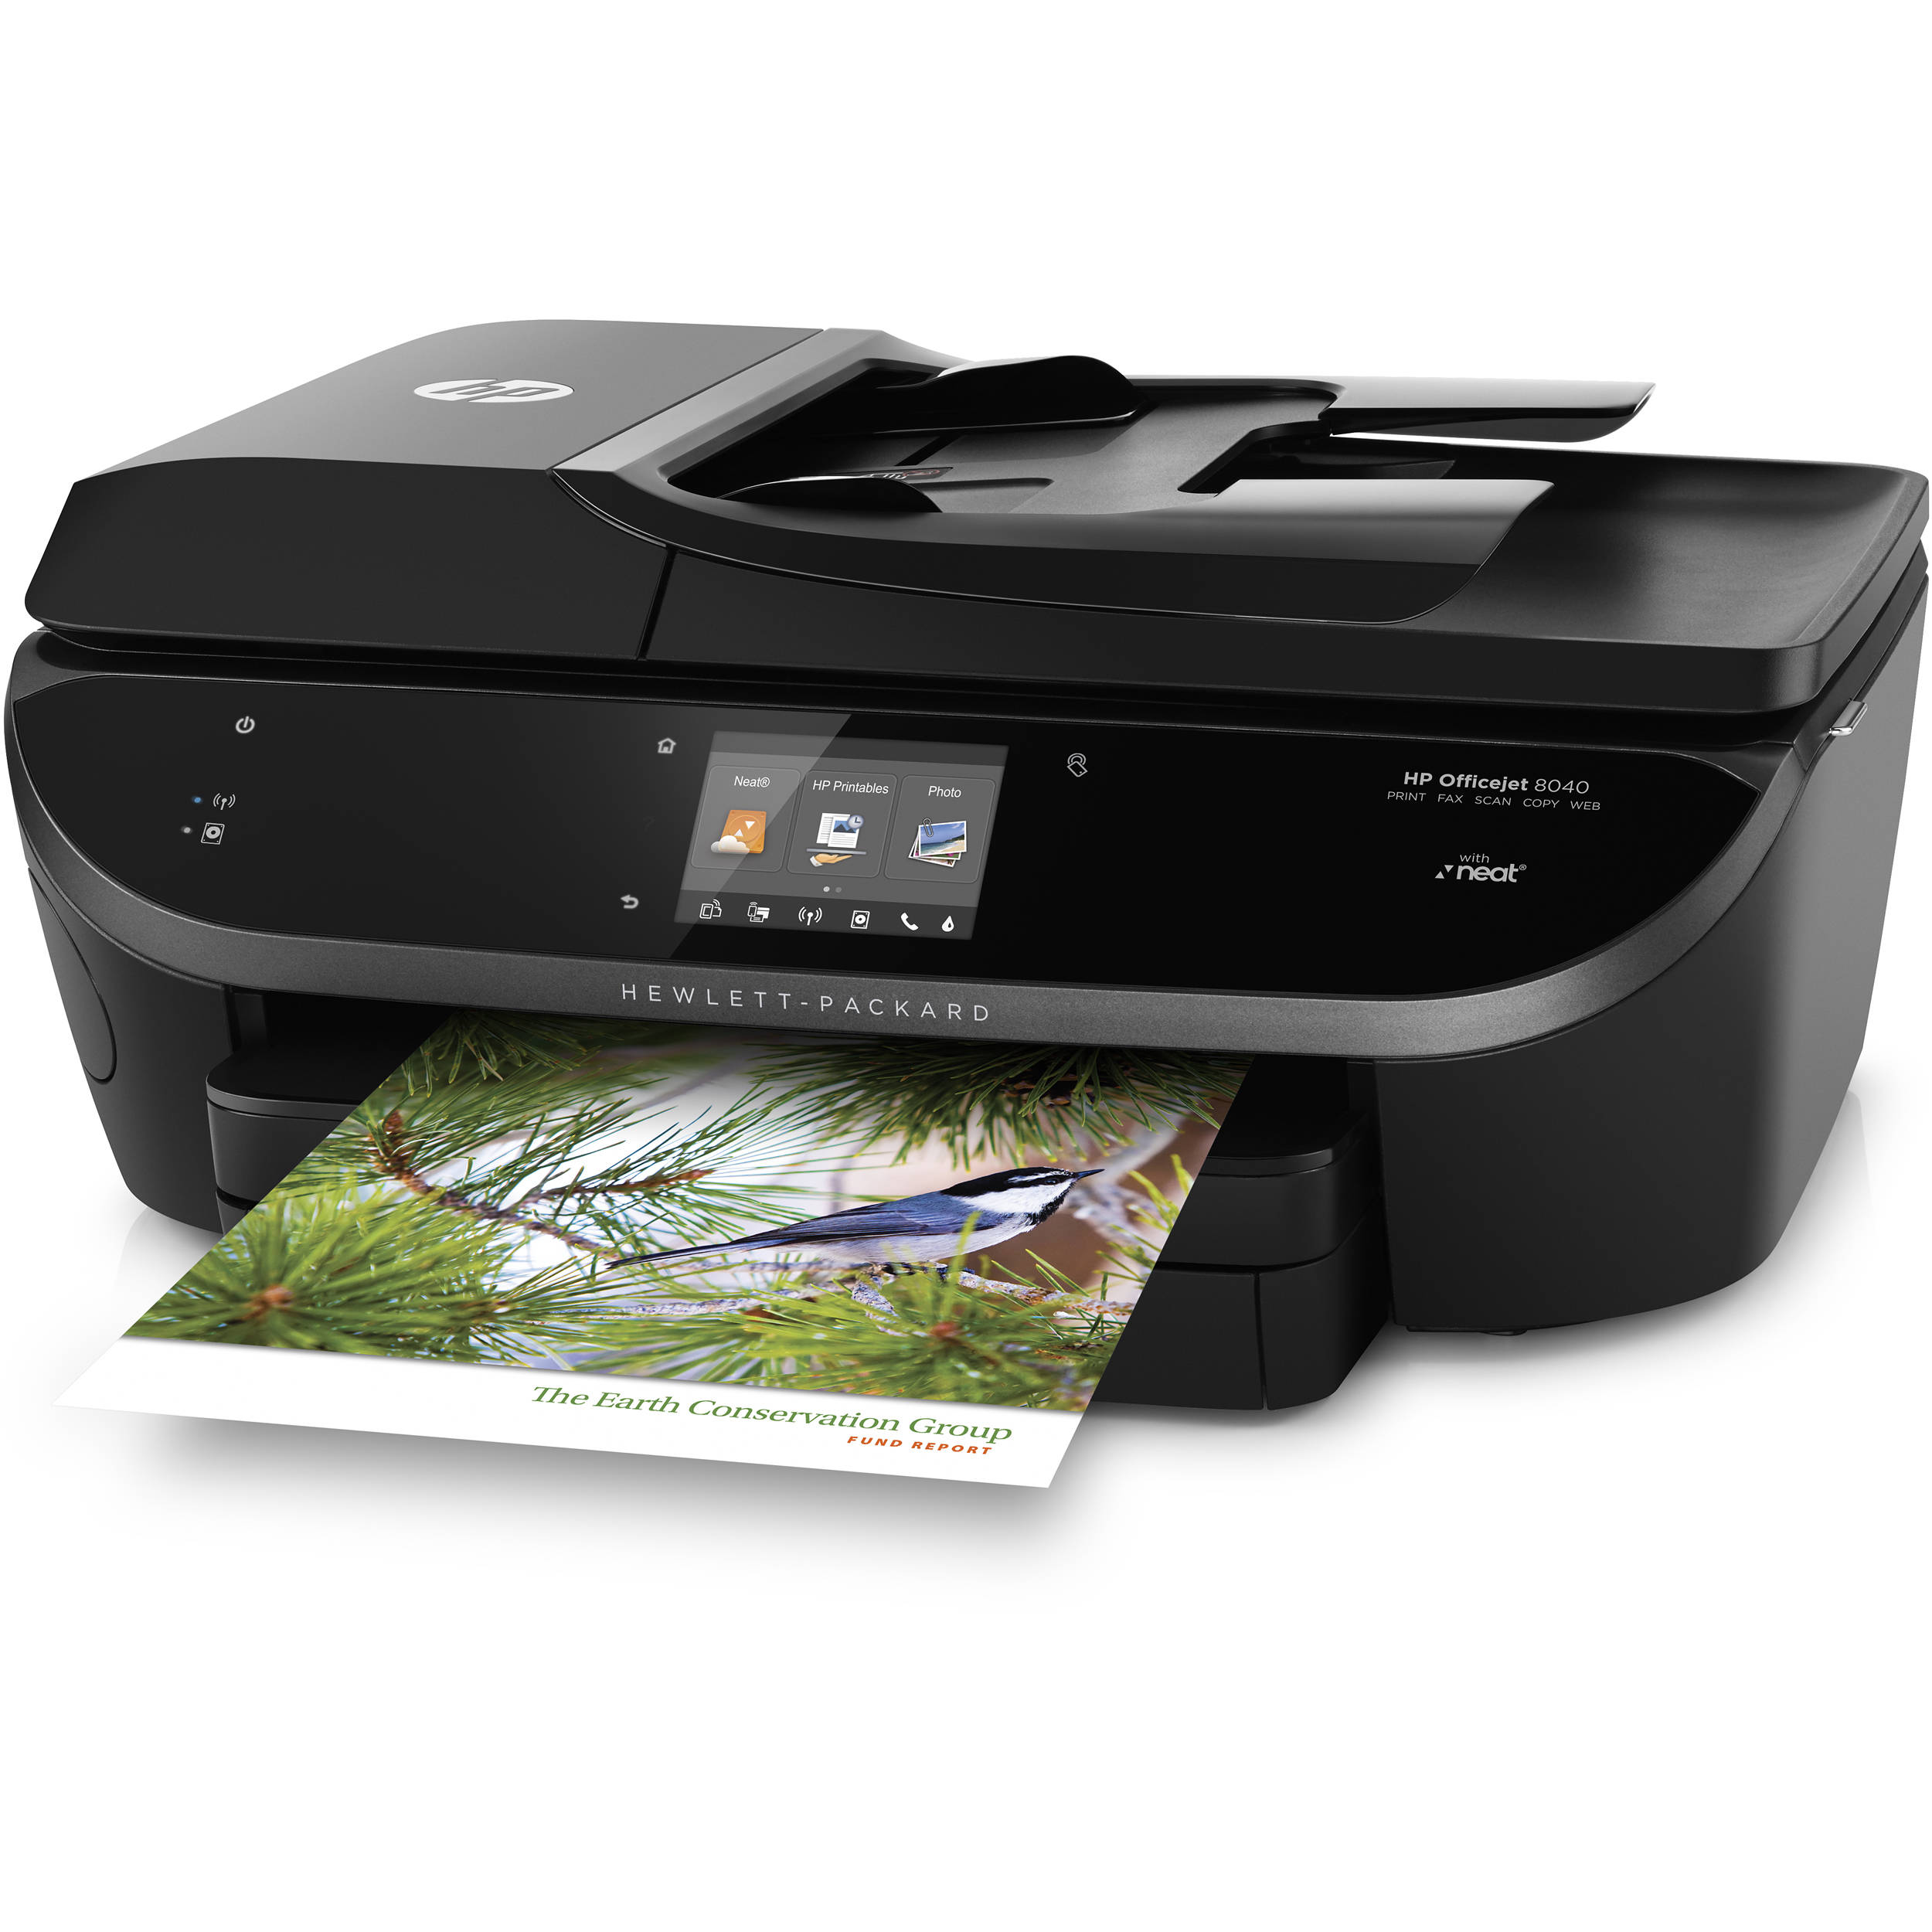 DRIVER UPDATE: HP OFFICEJET 8040